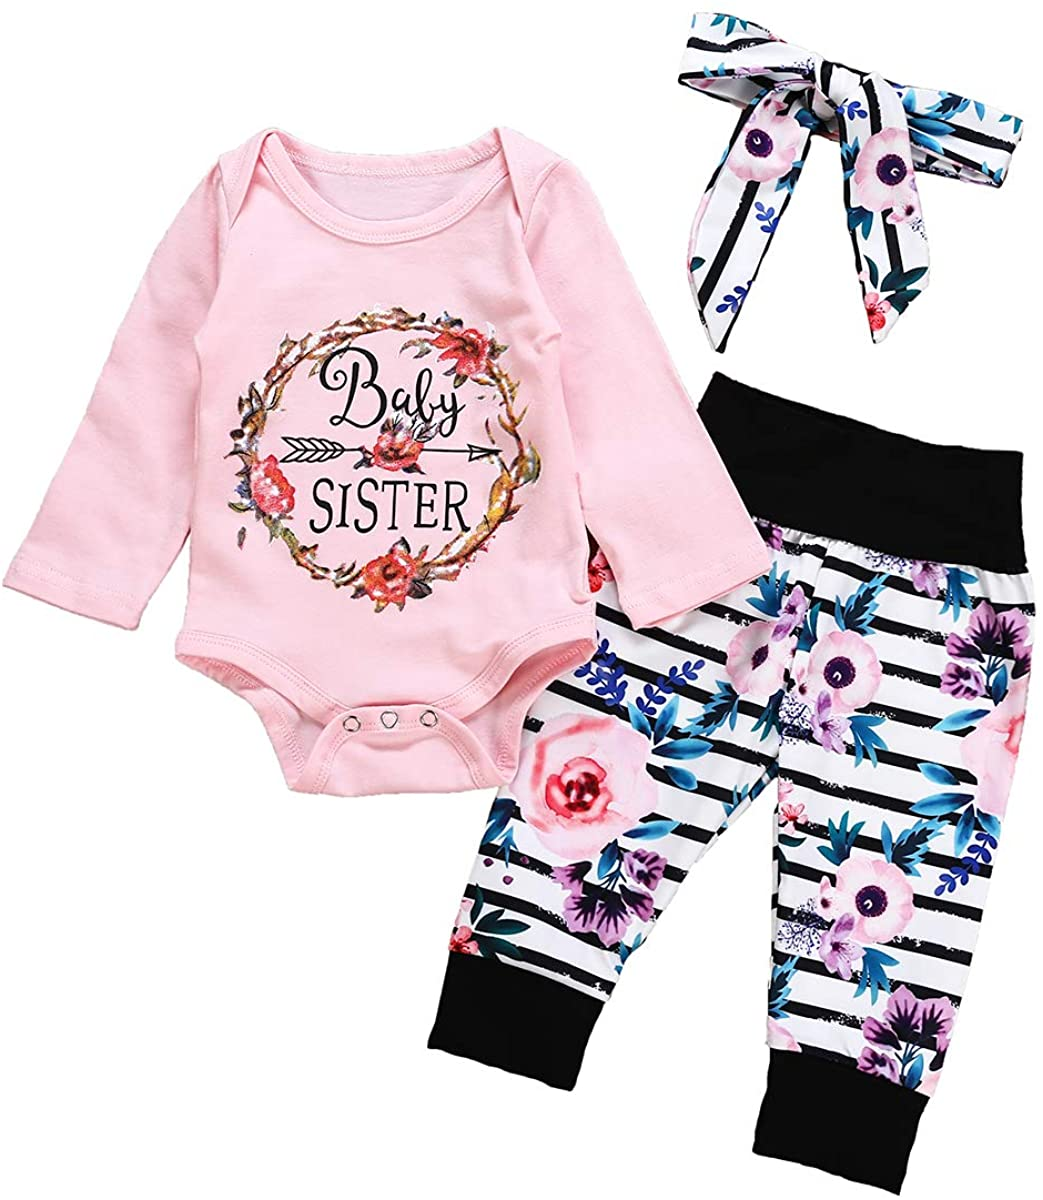 Newborn Infant Girl Baby Sister Outfits Bodysuit Rompers + Floral Leggings Pants Set Autumn Clothes + Headbands